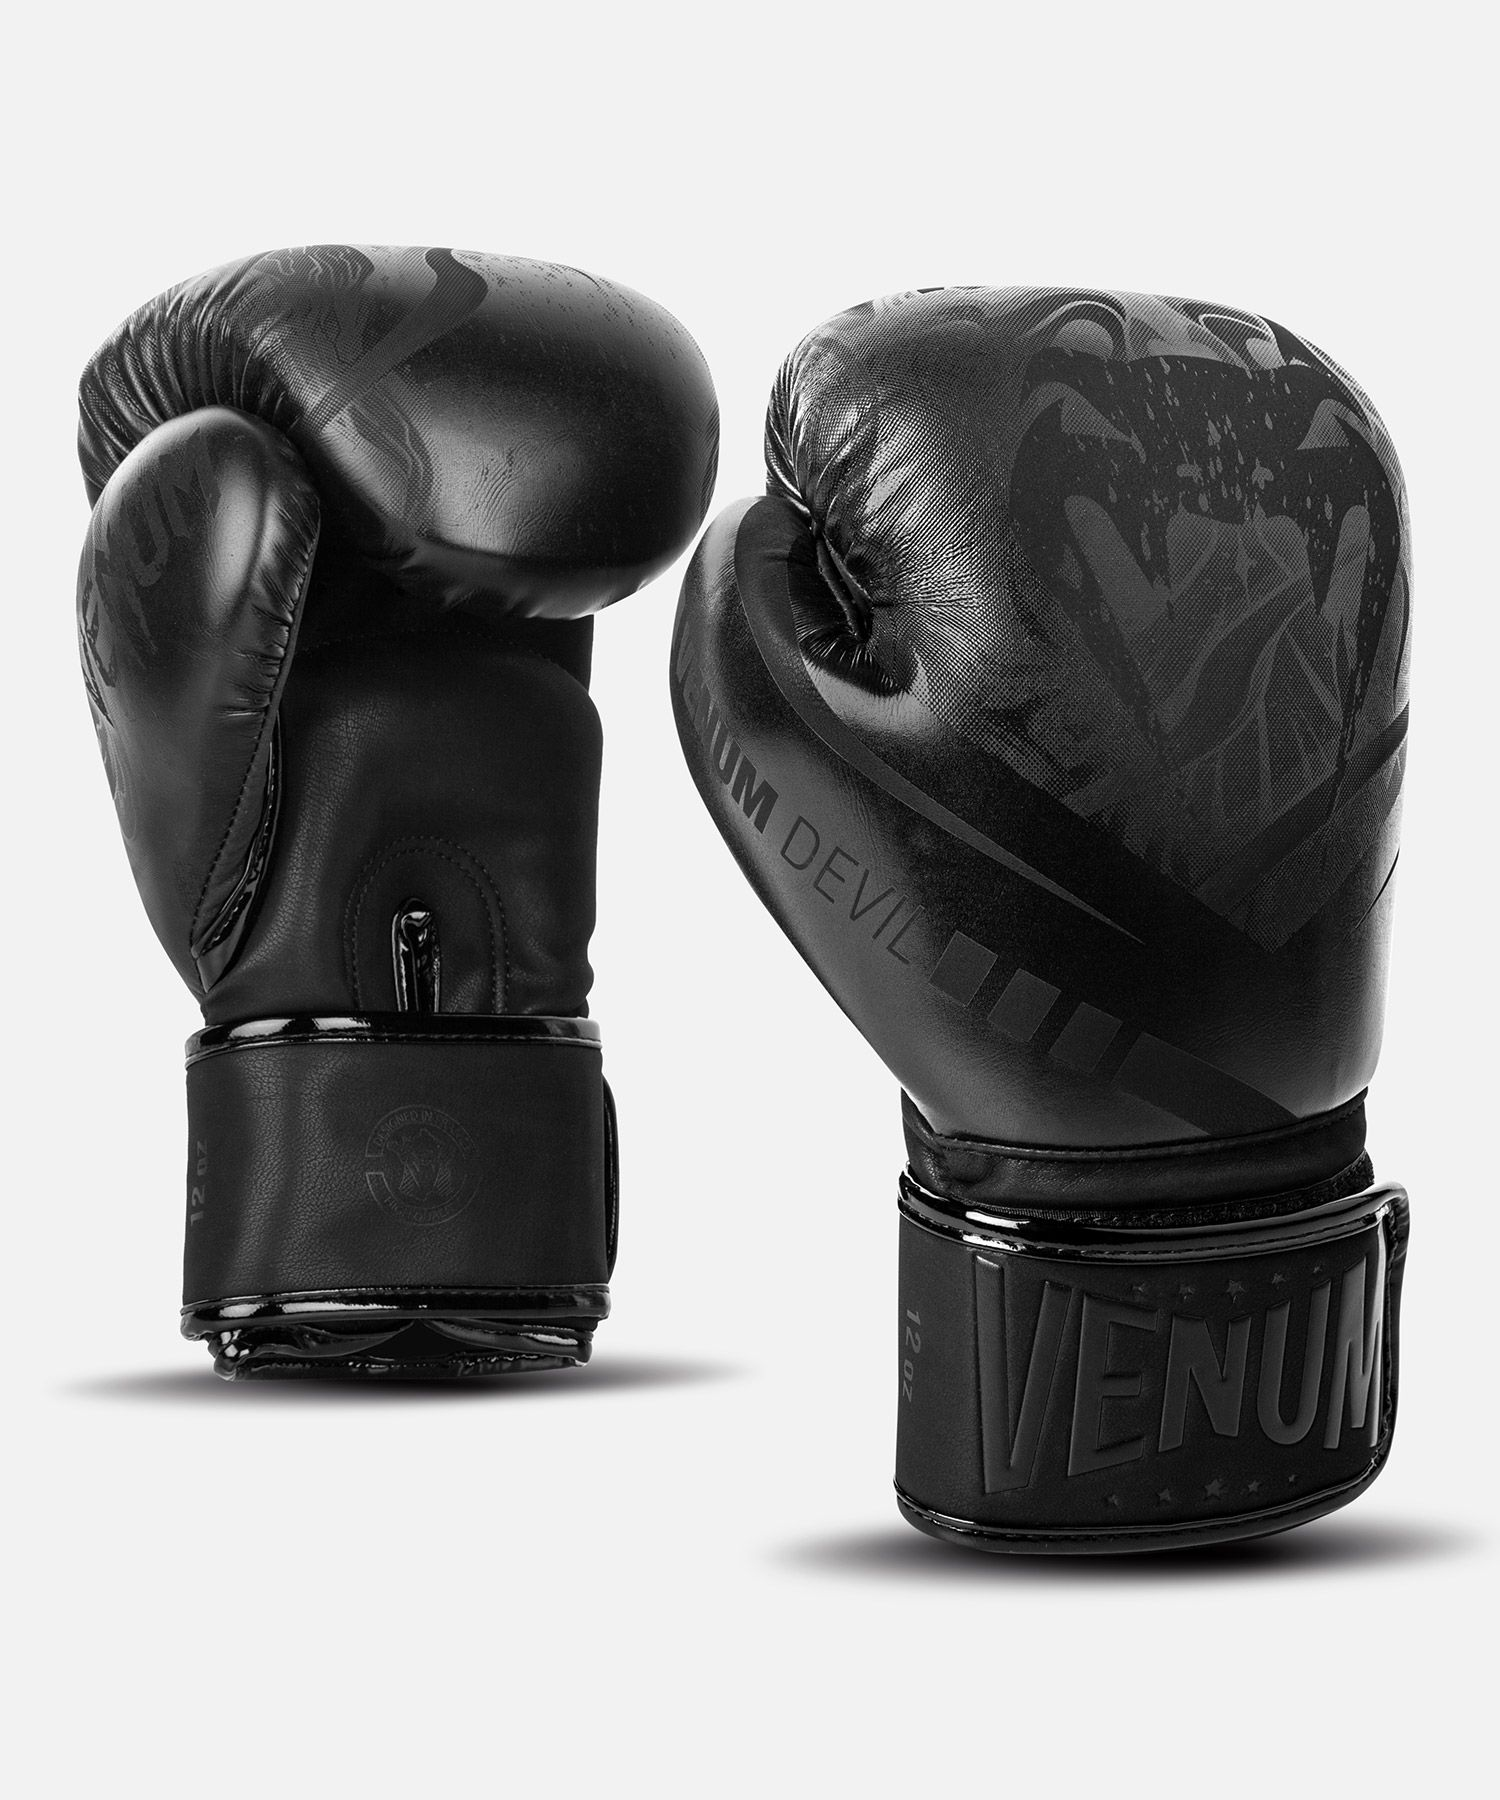 Venum Devil Boxing Gloves - Black/Black